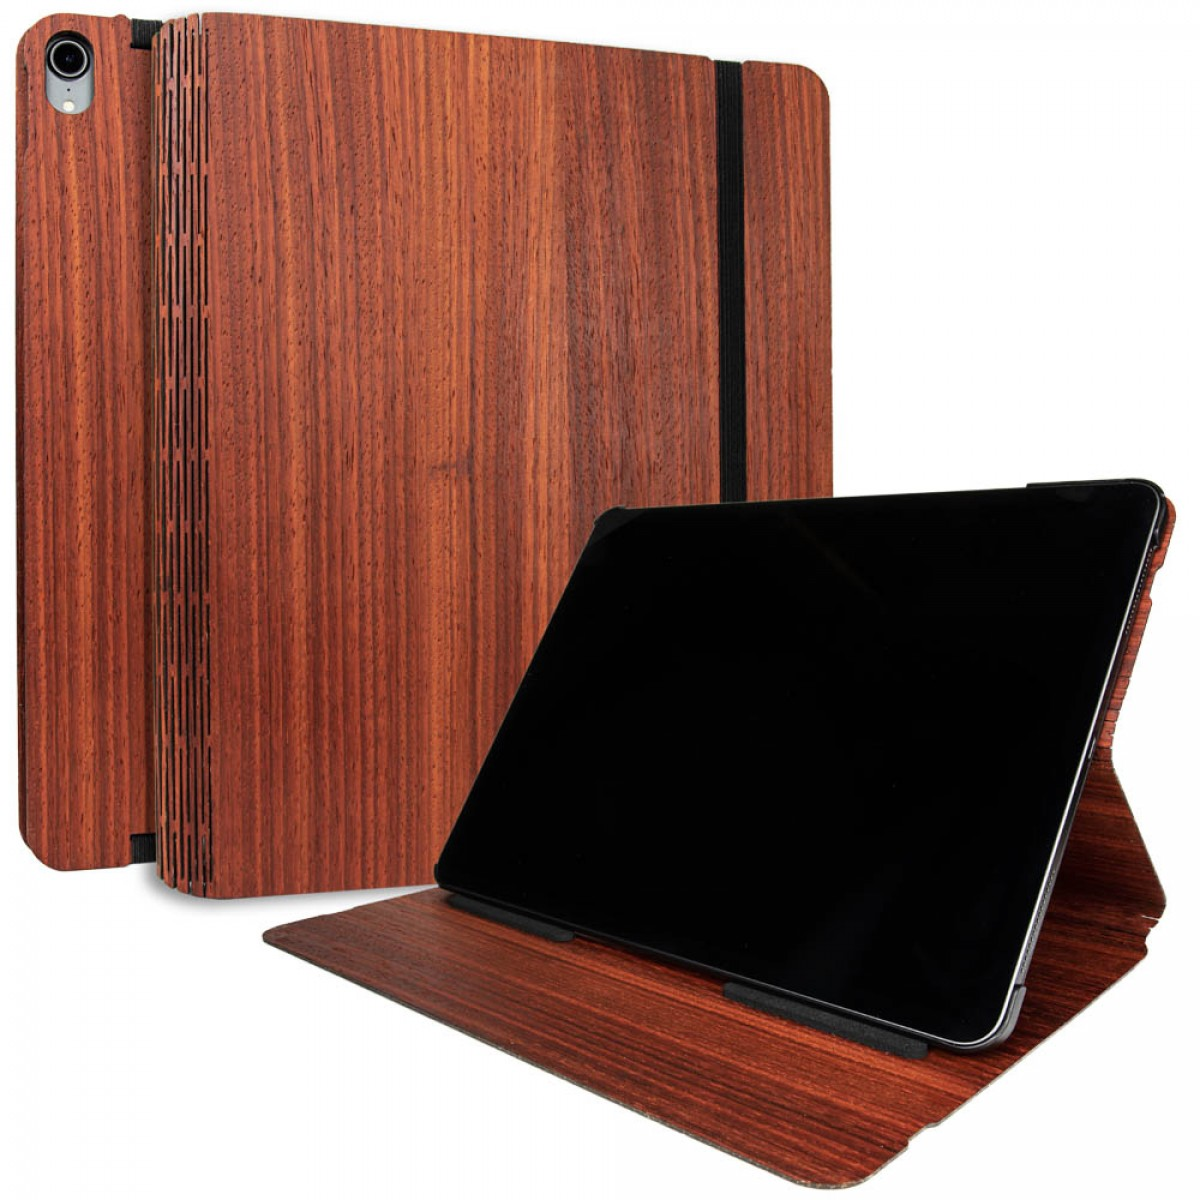 JUNGHOLZ Design WoodCase, Tabletcase, Padouk, iPad Pro 12.9'' 3.Generation